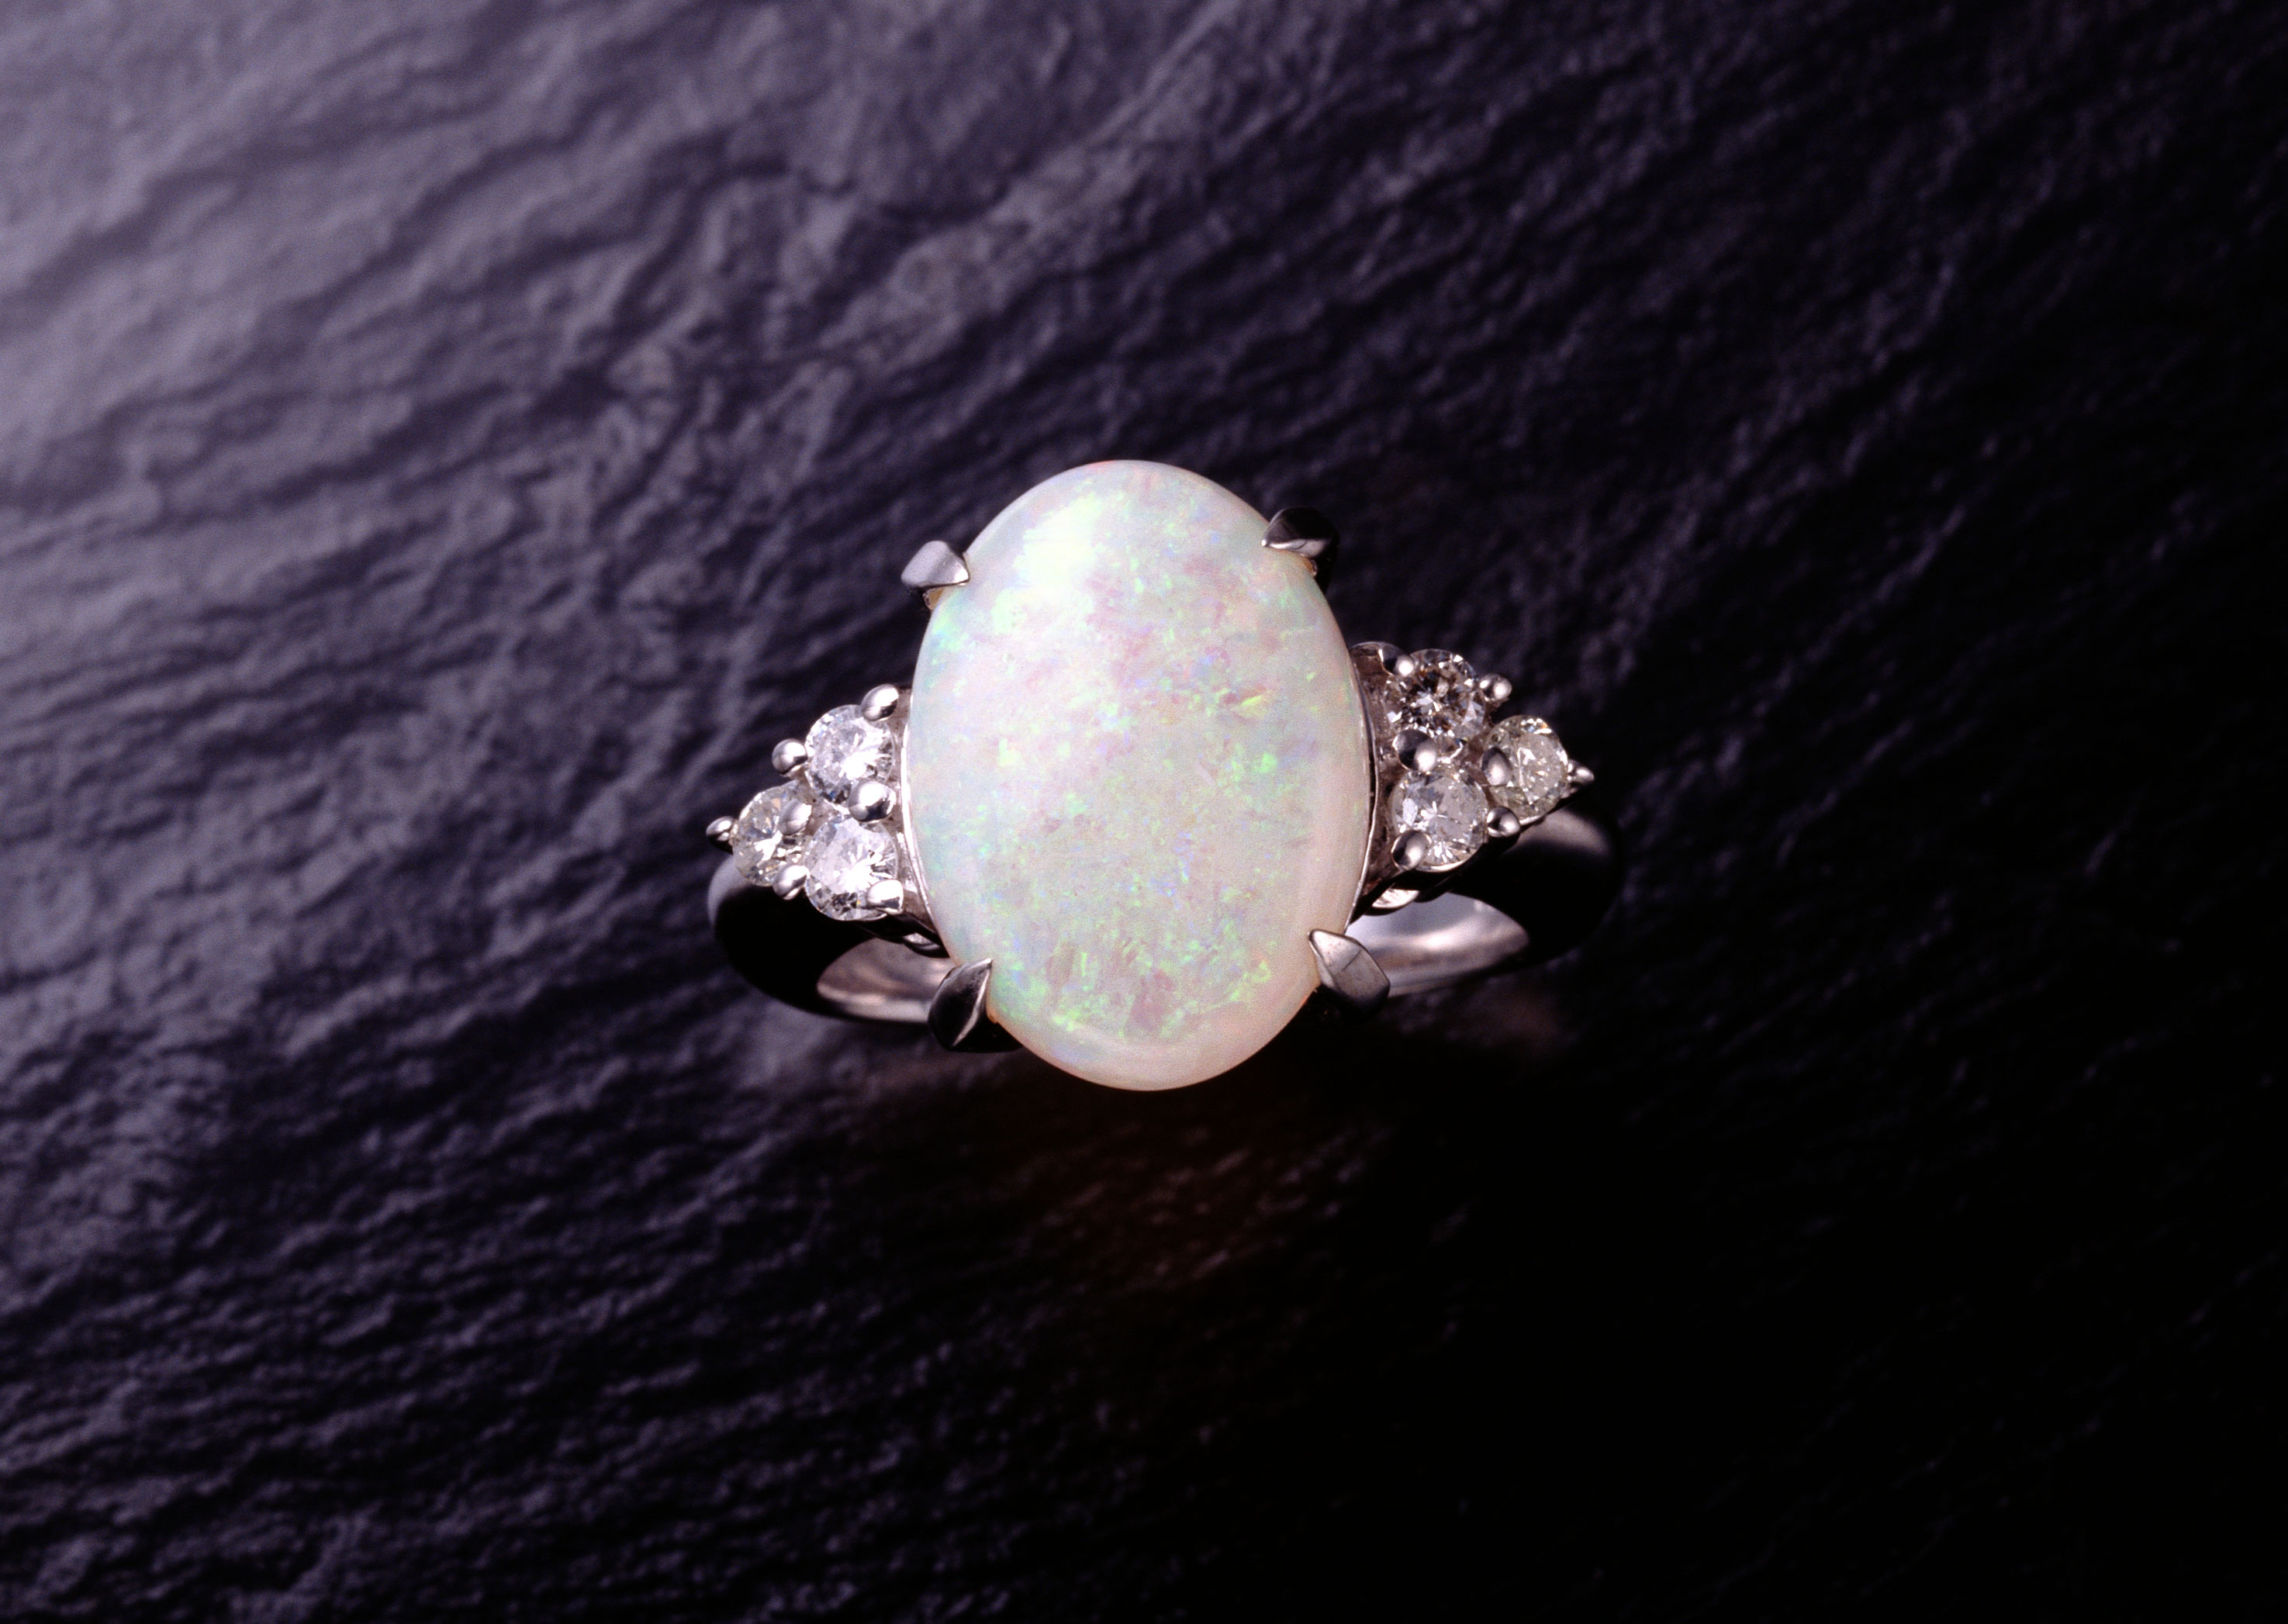 Are Opal Wedding Rings Bad Luck Lovetoknow